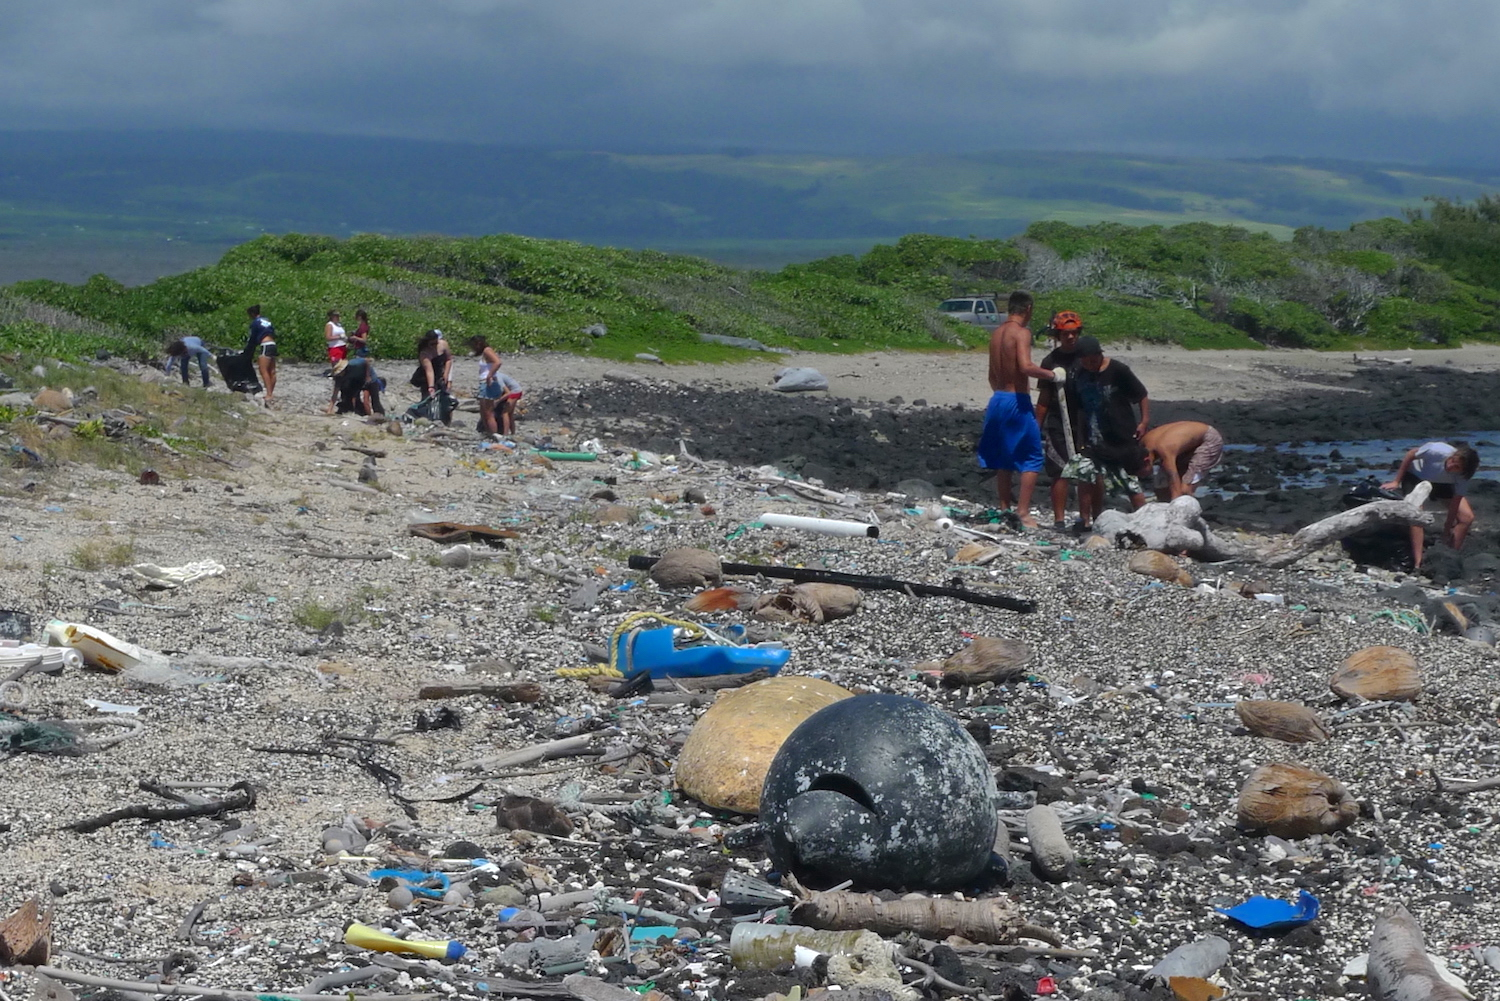 Kamilo is famous for large amounts of plastic that wash up here.